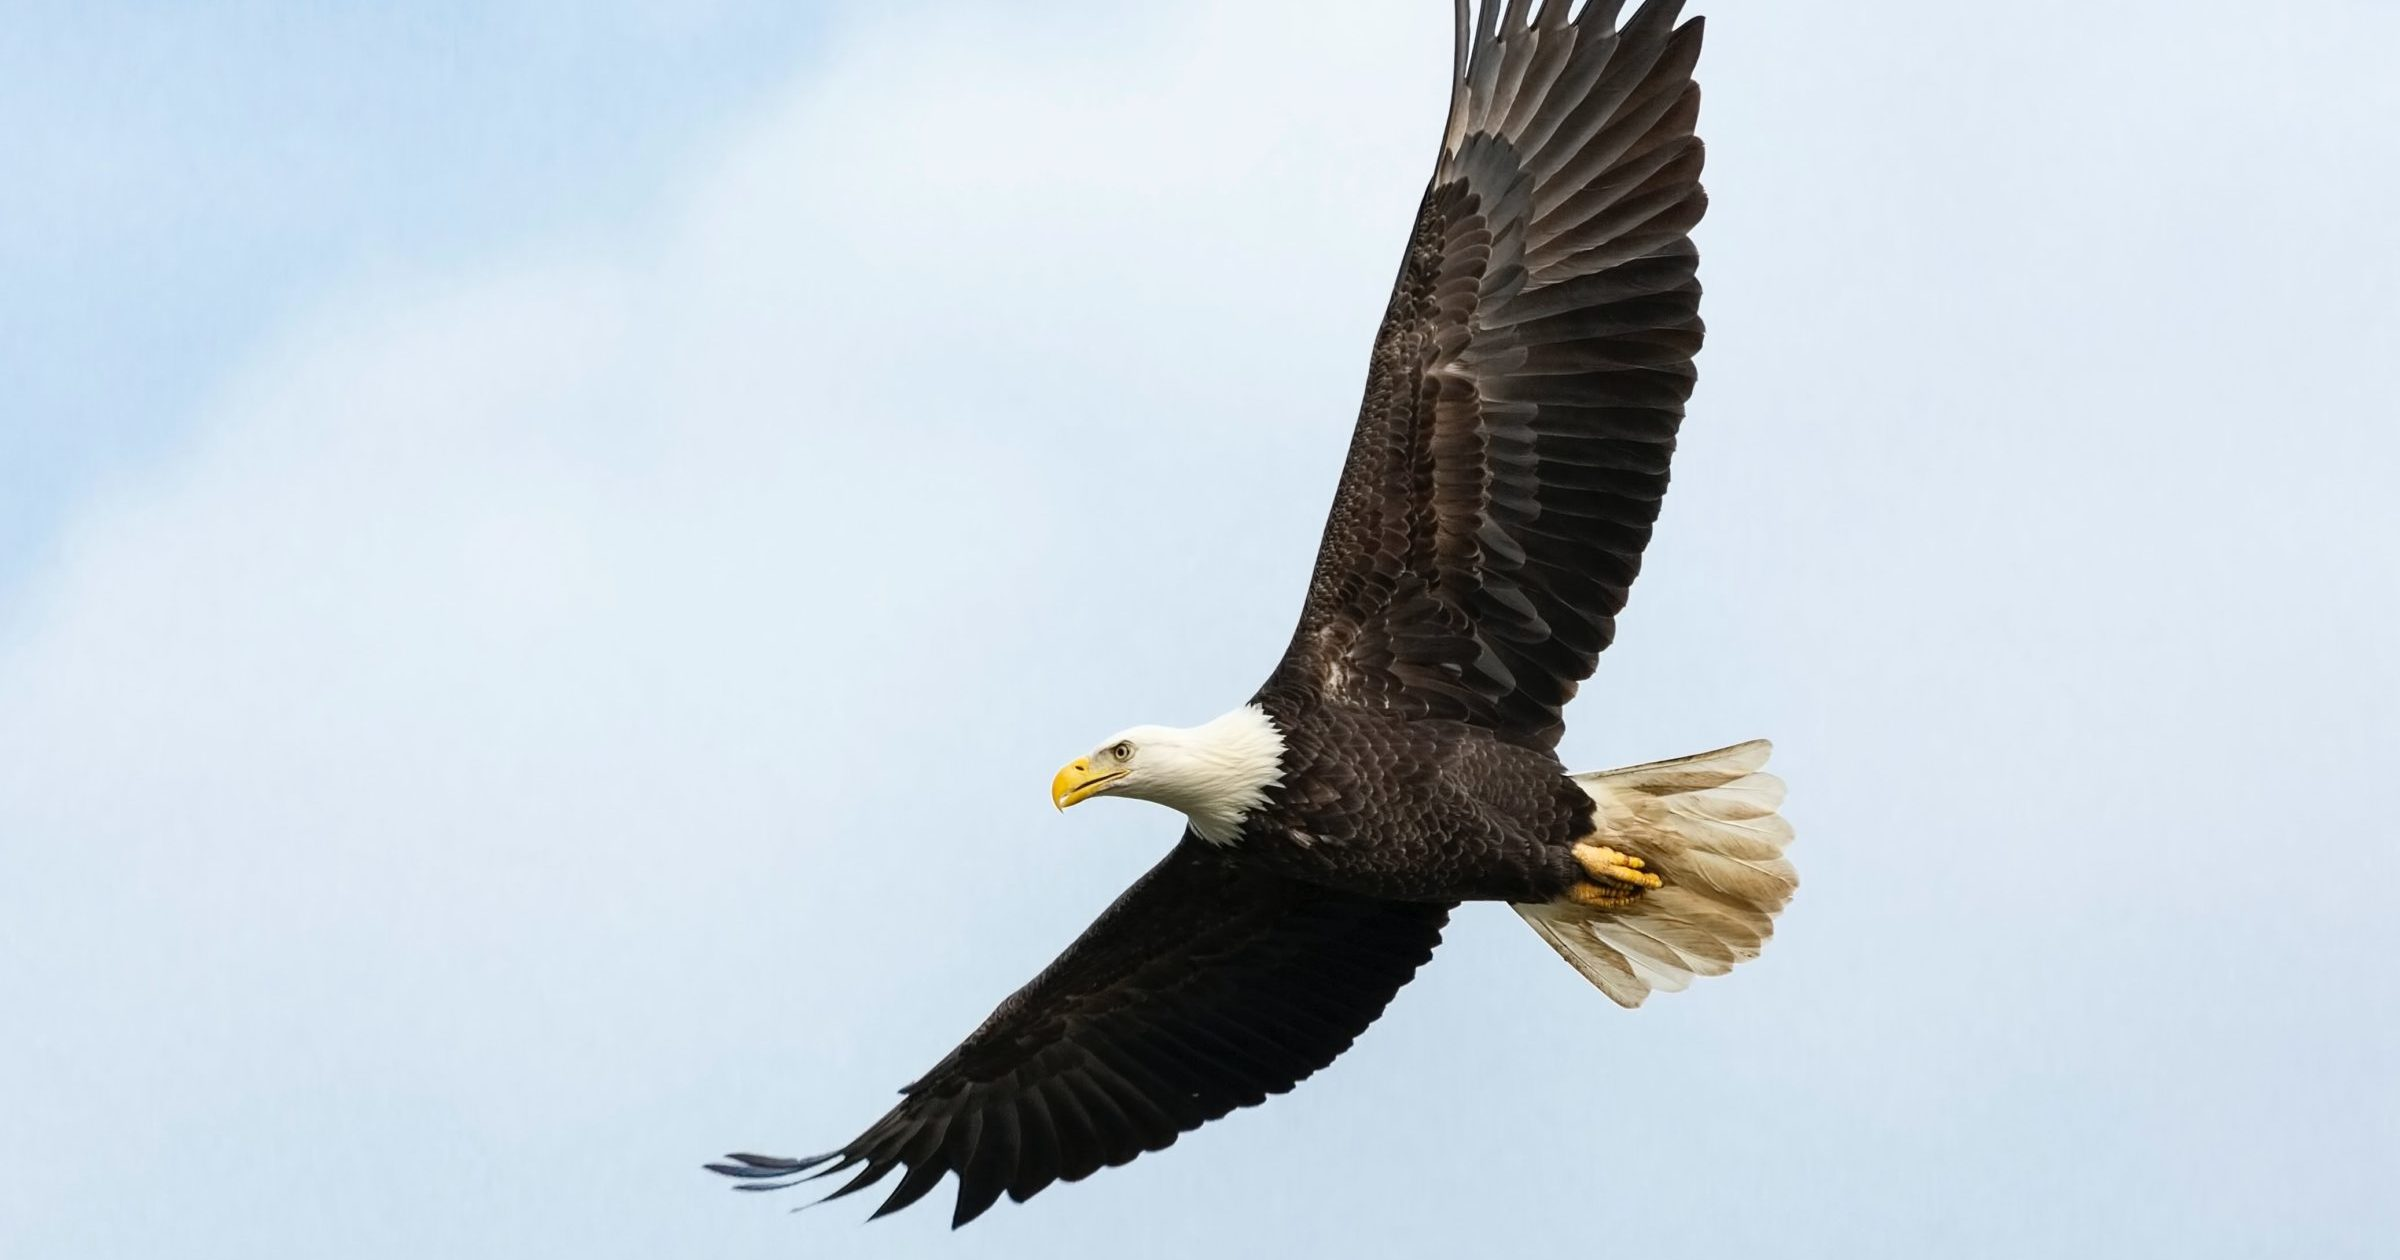 Where to spot bald eagles in Lebanon County